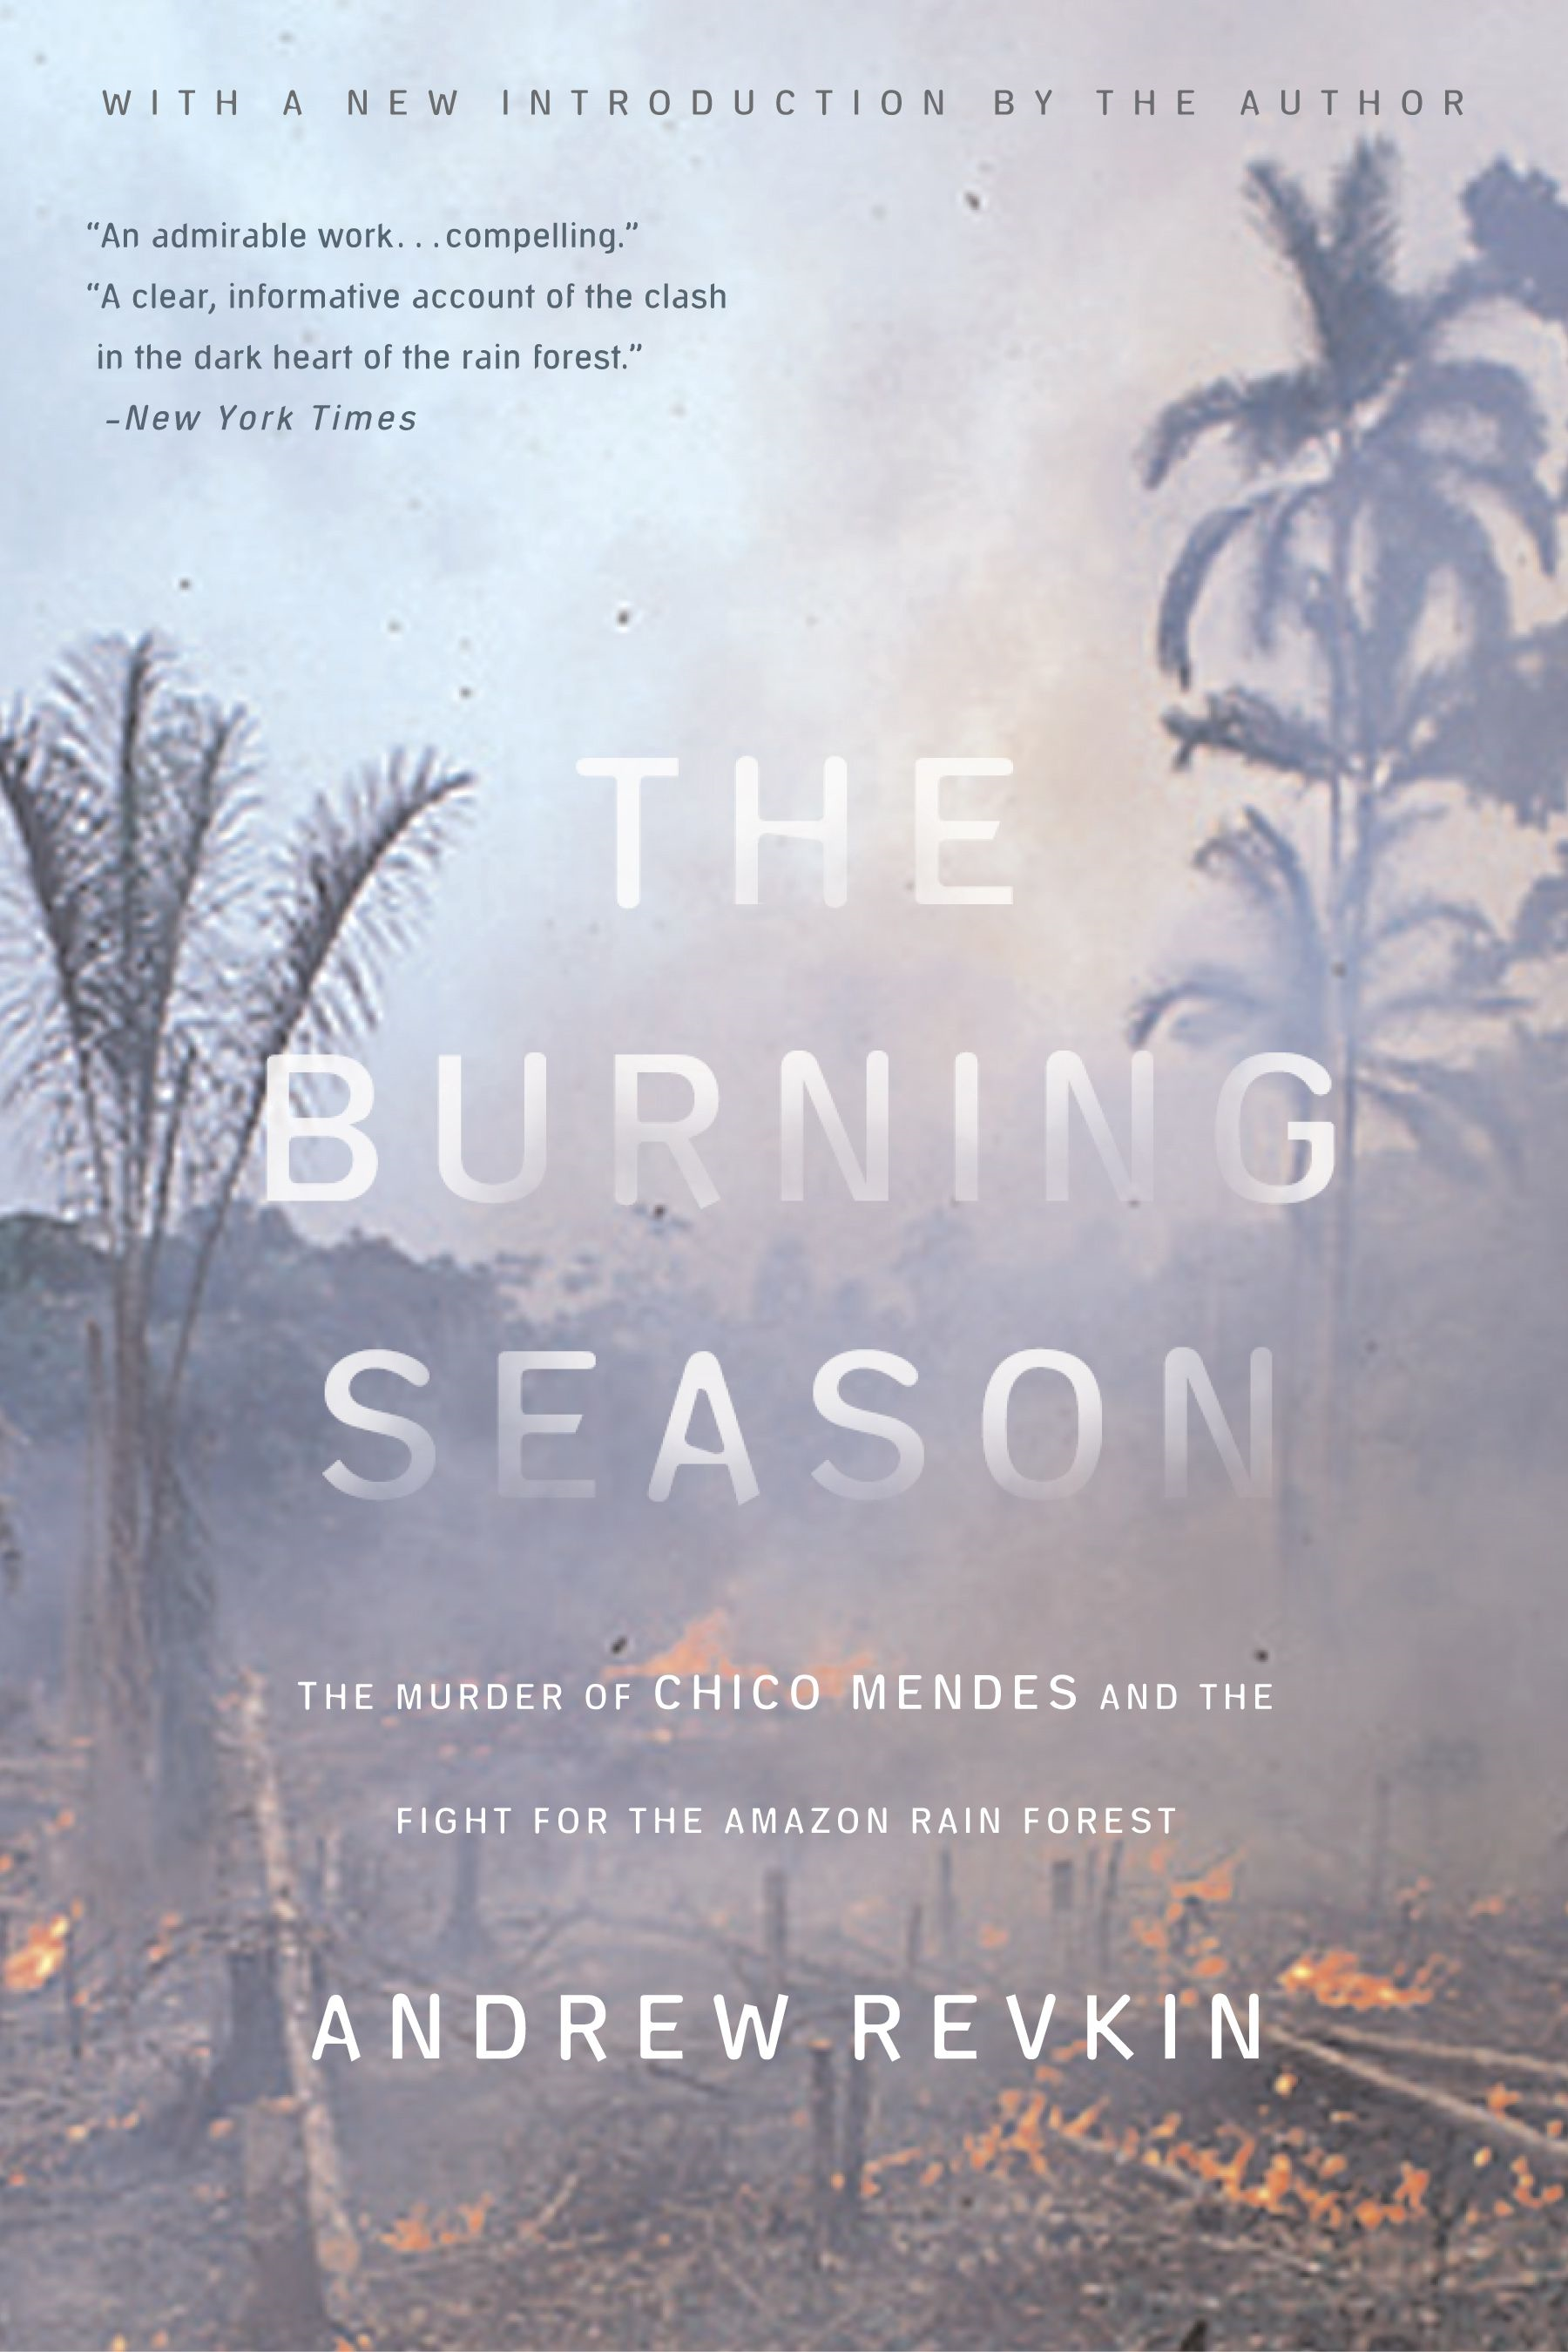 The Burning Season: The Murder of Chico Mendes and the Fight for the Amazon Rain Forest By: Andrew Revkin